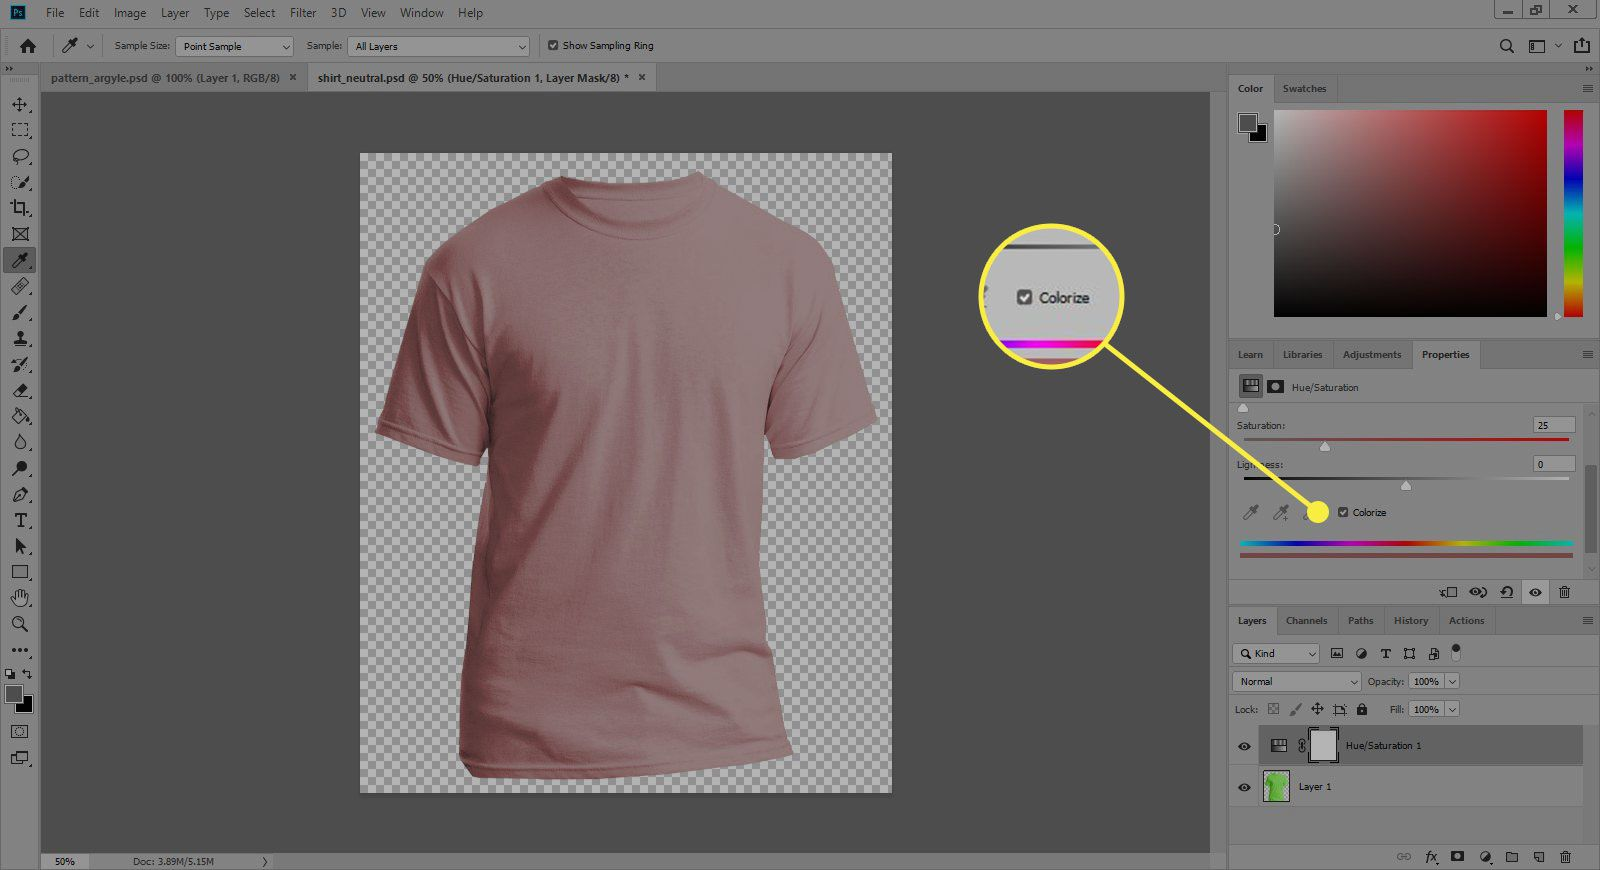 A screenshot of Photoshop's Adjustments window with the Colorize option highlighted